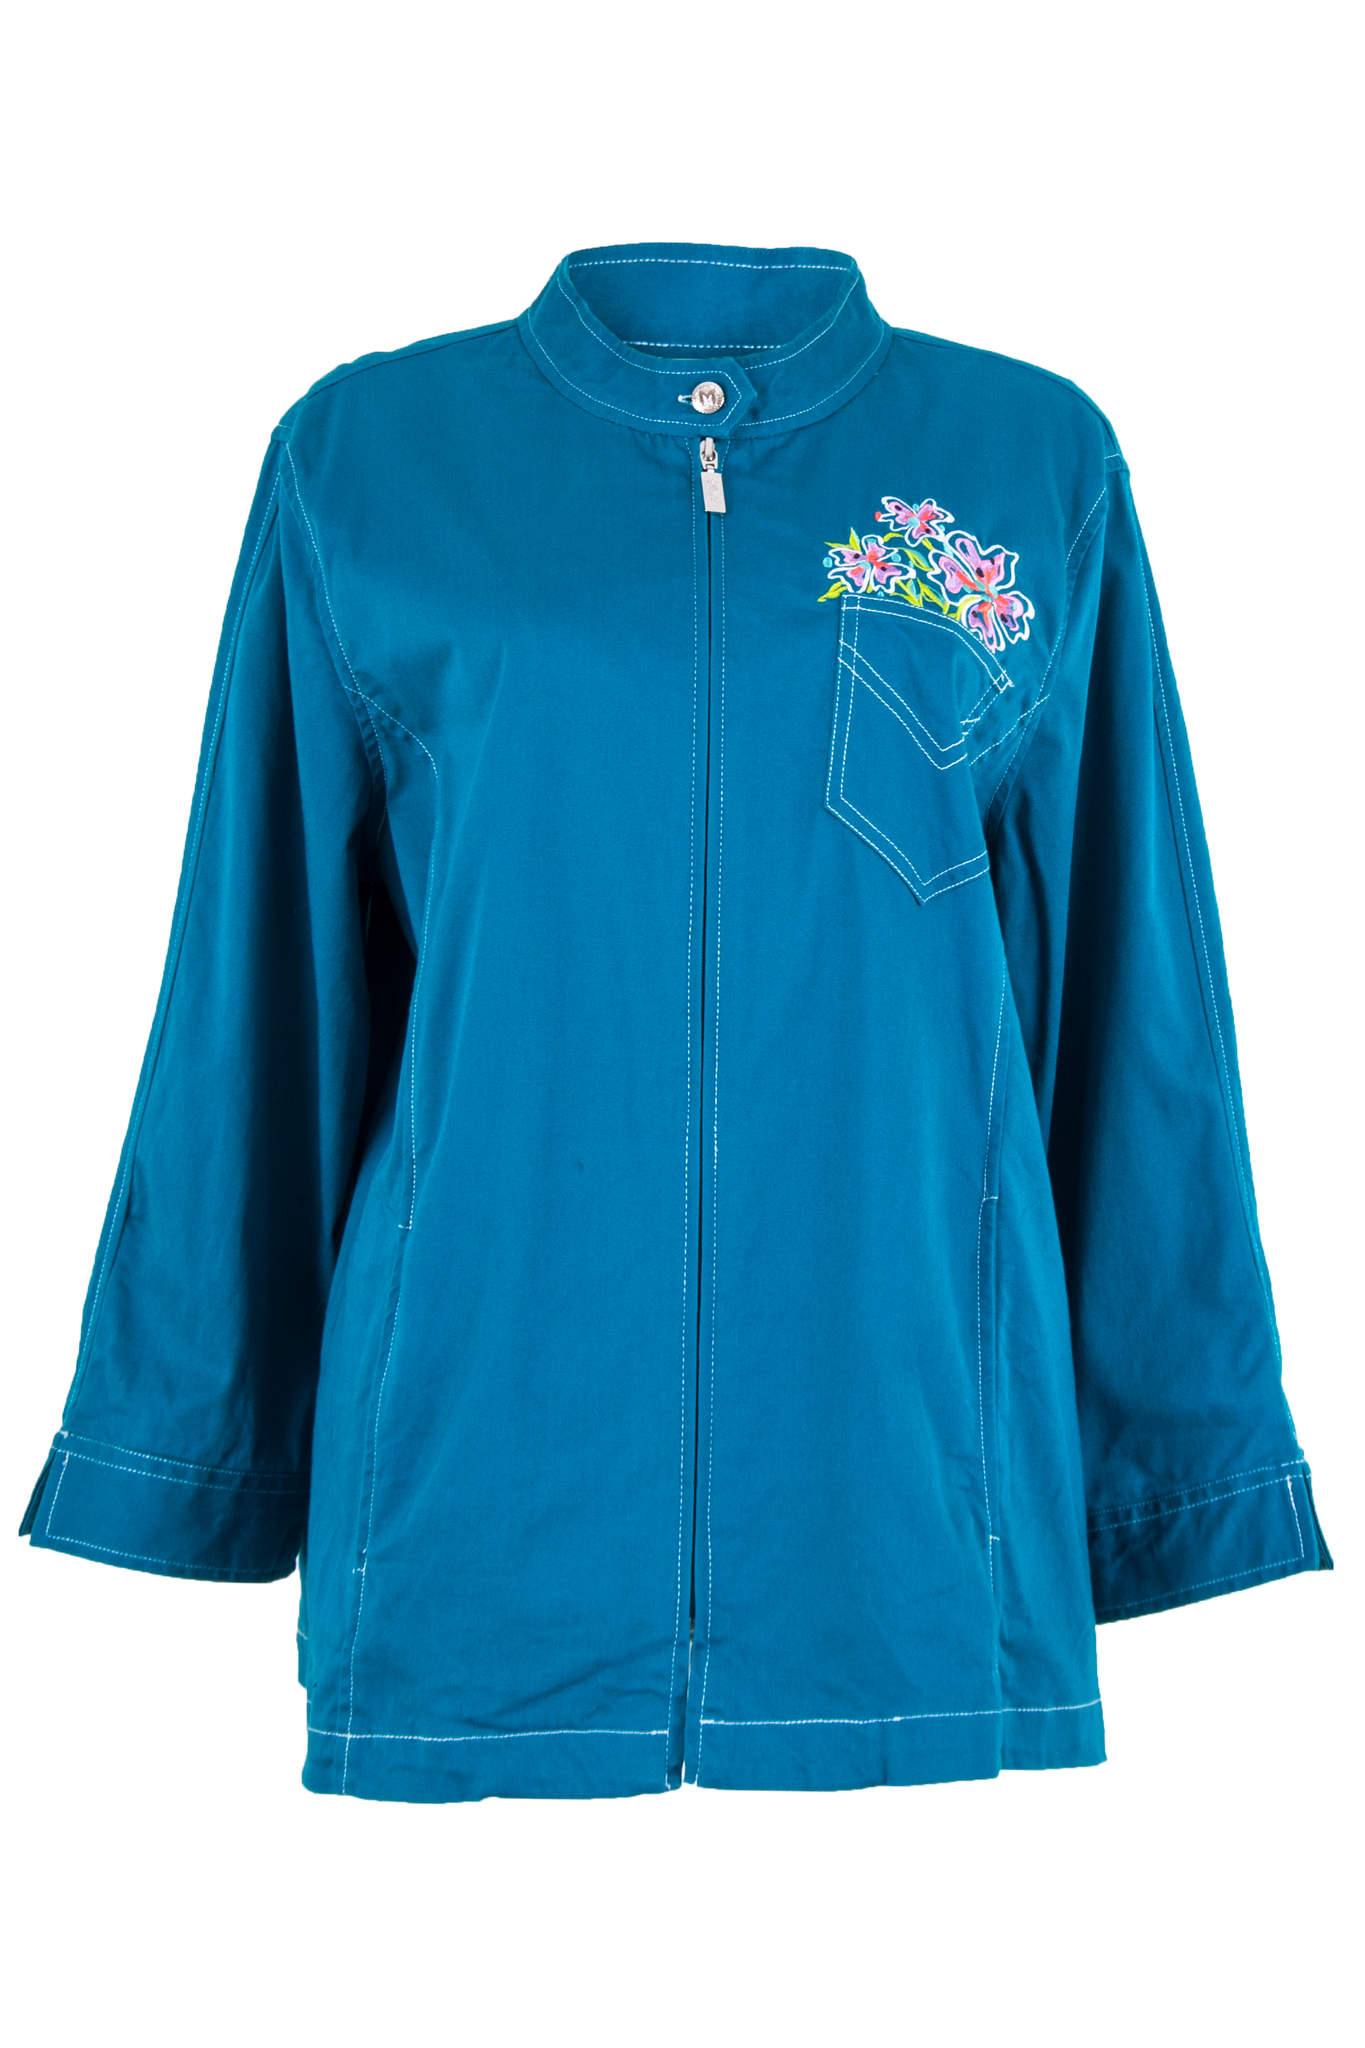 Blue jacket with floral embroidery and zip closure